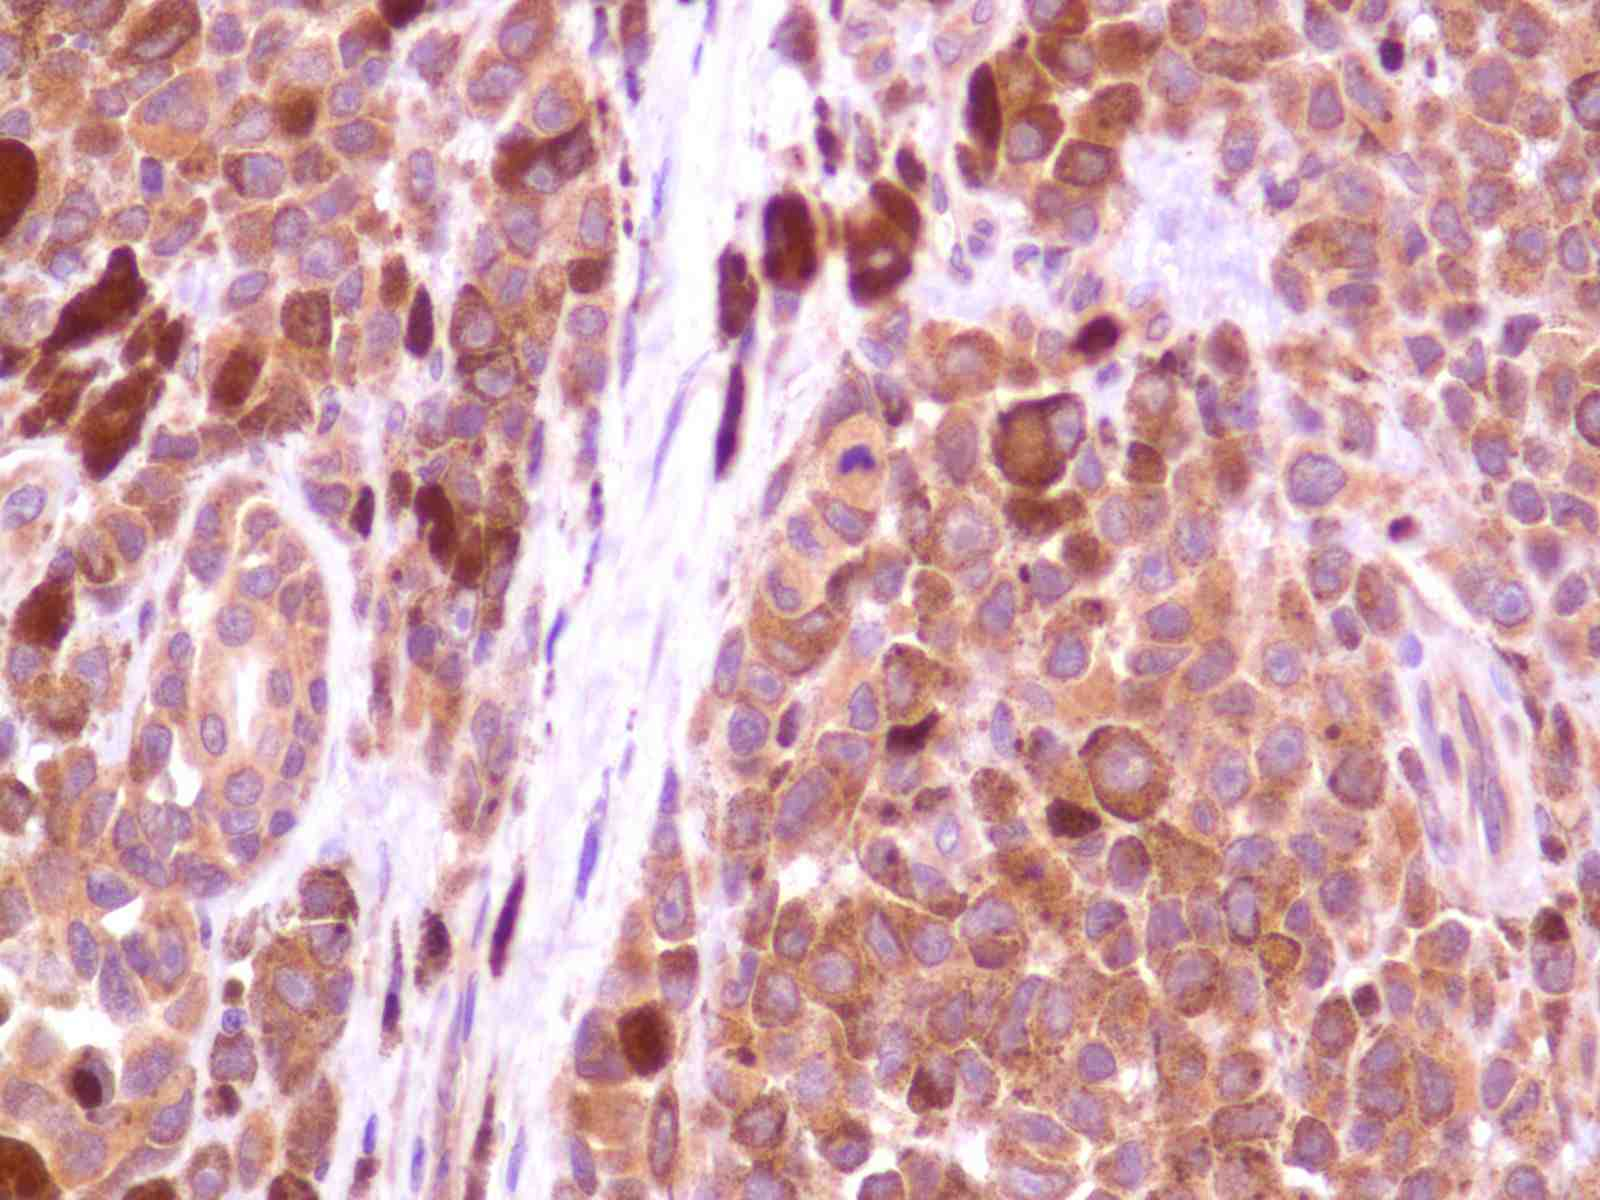 Human Melanoma stained with anti-PI3K p85 antibody